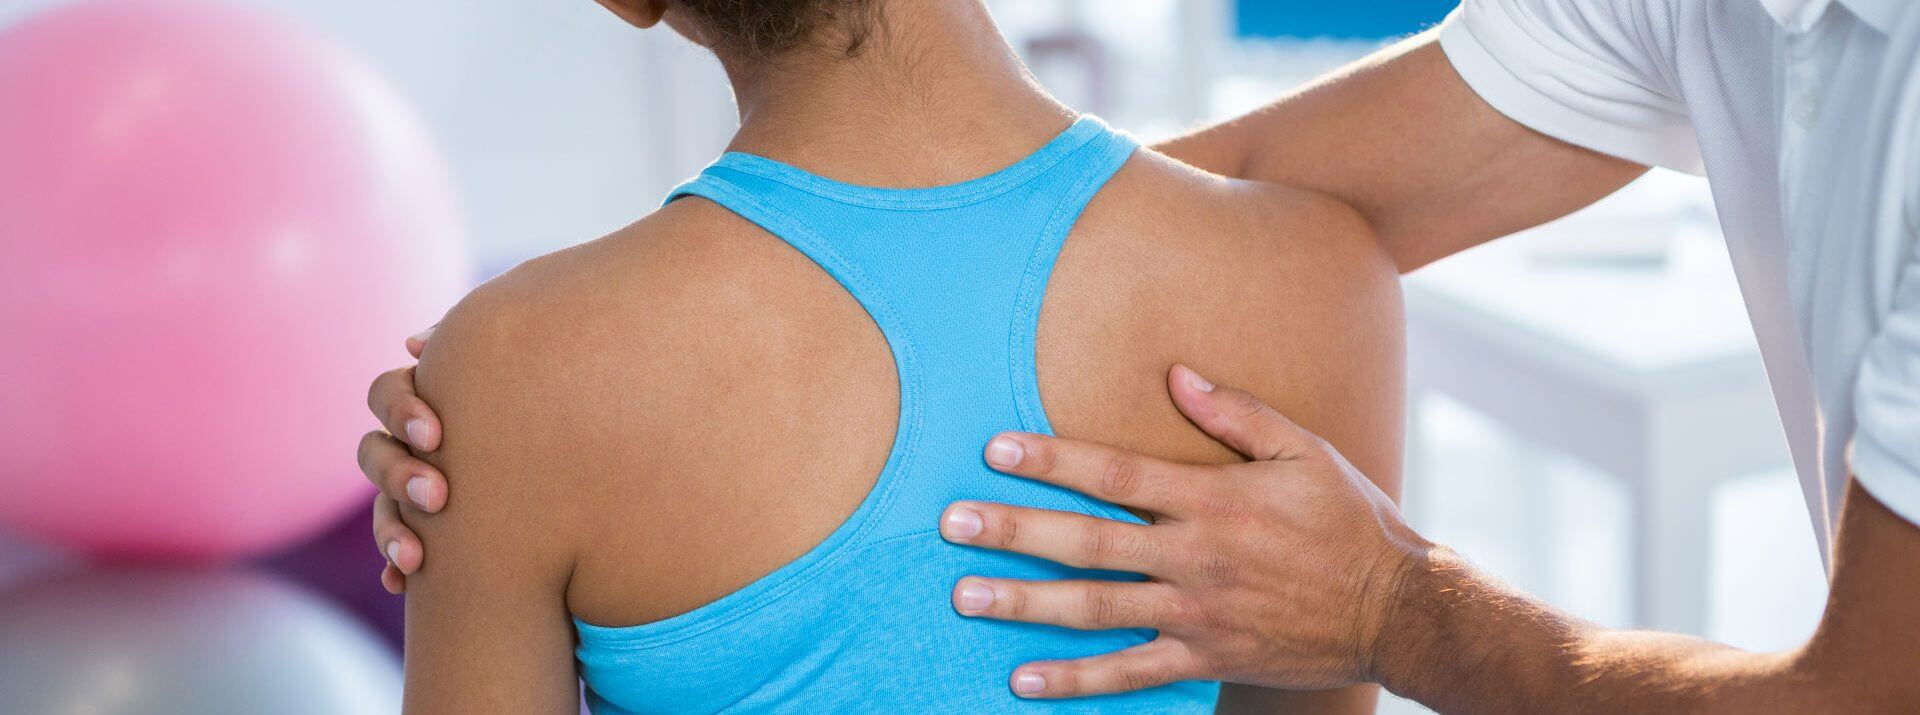 Physiotherapy can help diagnose the problem, educate, and treat.